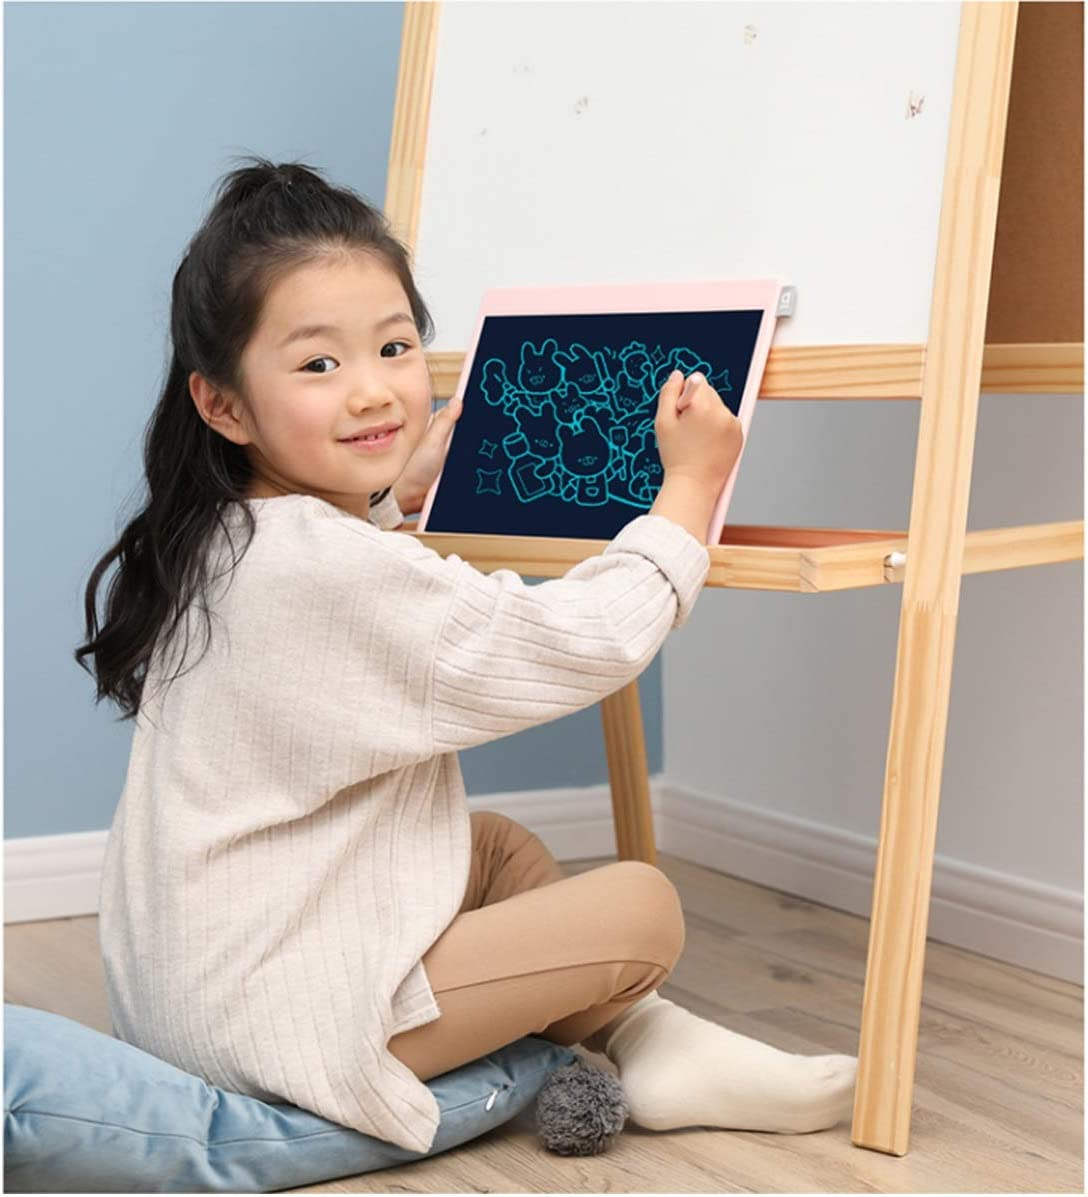 Electronic Blackboard LCD Sketchpad Blue Pink Sketchpad, Crow Painting Board Color : Pink Xionghaizi Machine Island Smart Small Blackboard Tablet